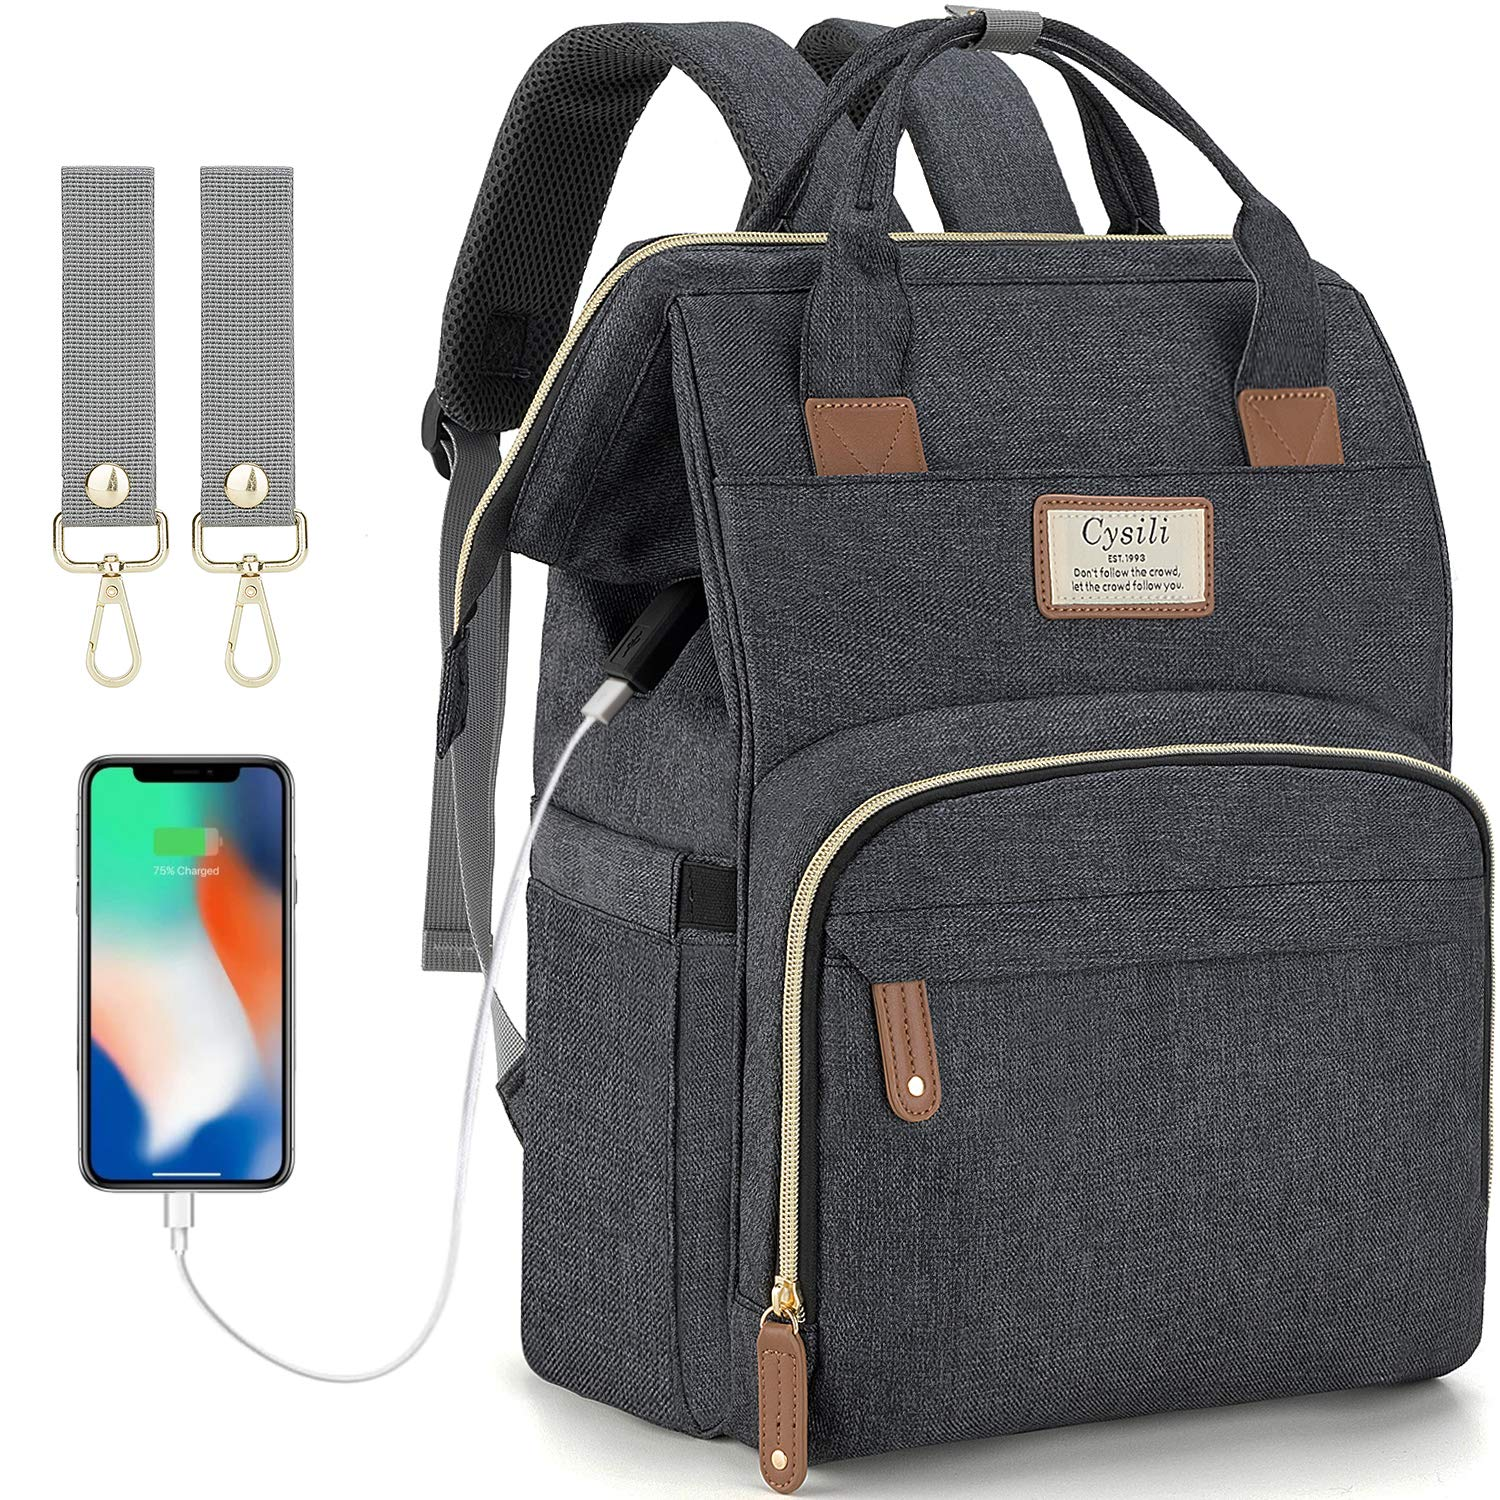 Black and Grey Multi Pockets Diaper Bag with USB Port and Heat Retainer for Baby Bottles with USB Cable SMILEYBOO Baby Changing Bag Backpack Waterproof Unisex Baby Bag